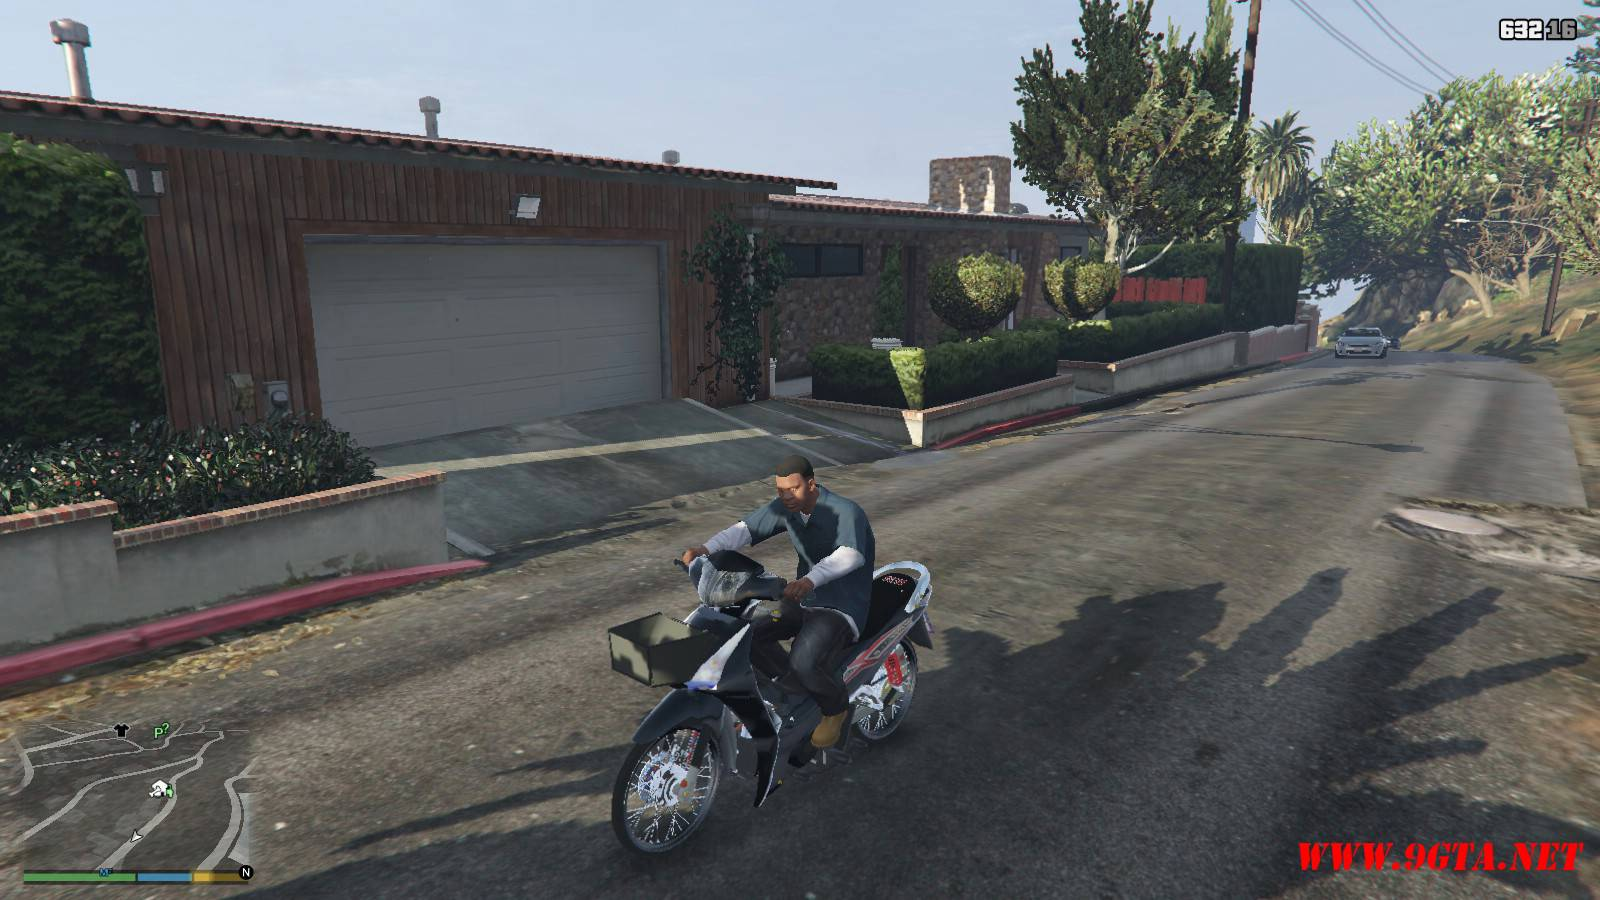 2015 Honda Wave 125i Mod For GTA5 (6)